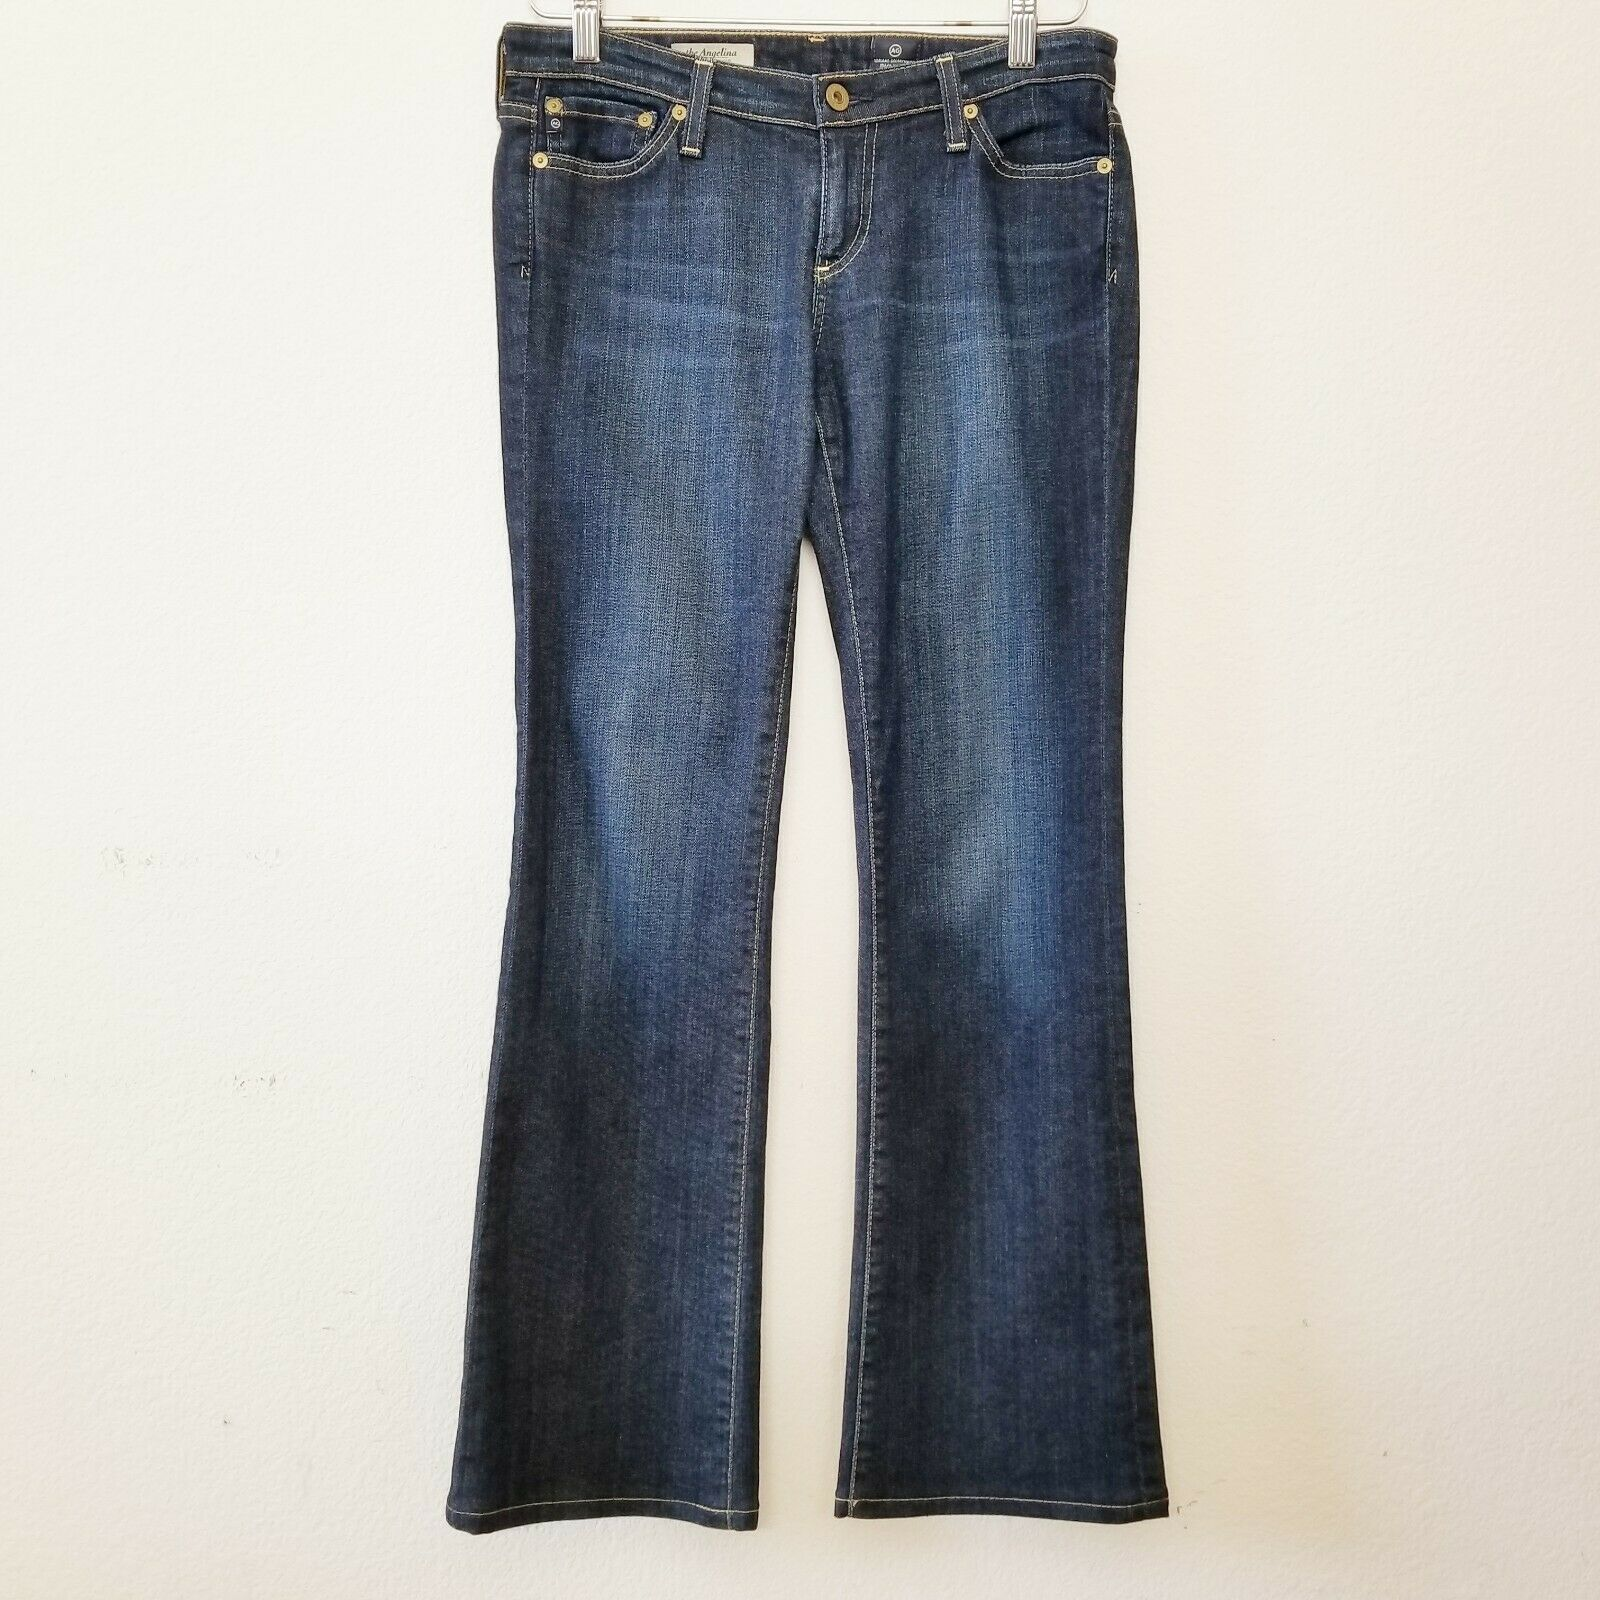 AG Adriano goldschmied The Angelina Petite  Boot Cut Jeans Size 28